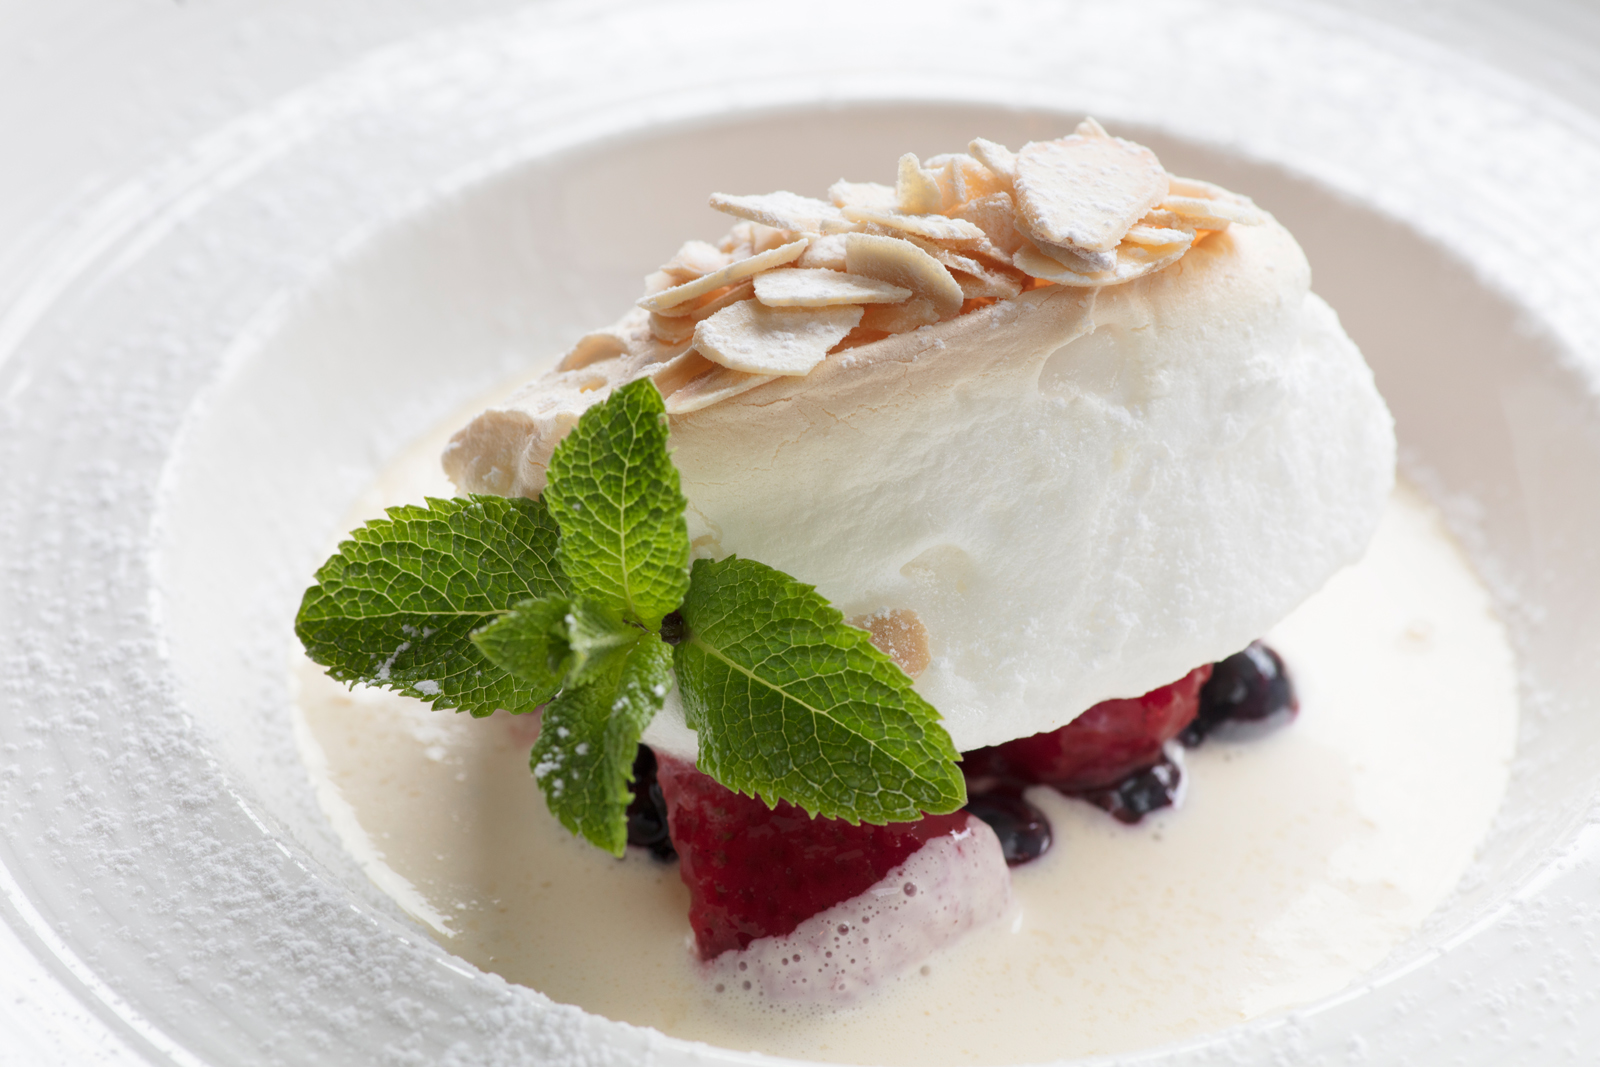 Baked Isle Flottante with Summer Berries & Toasted Almonds